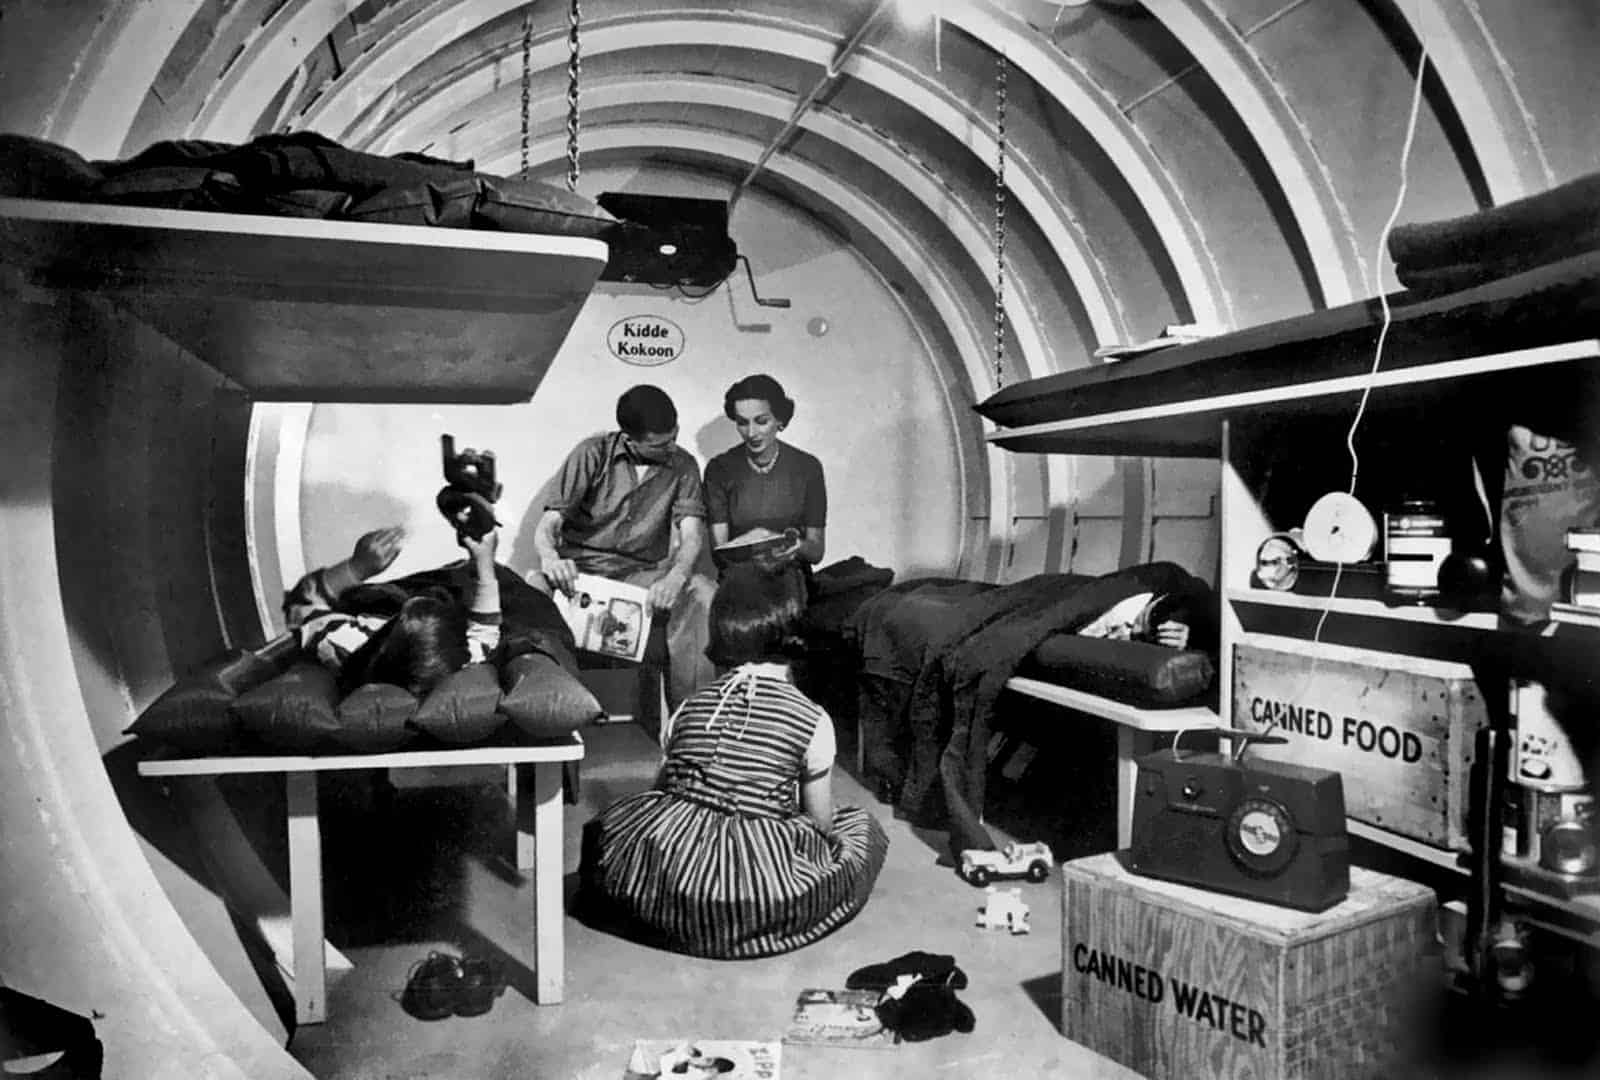 nuclear bomb shelter 1950s